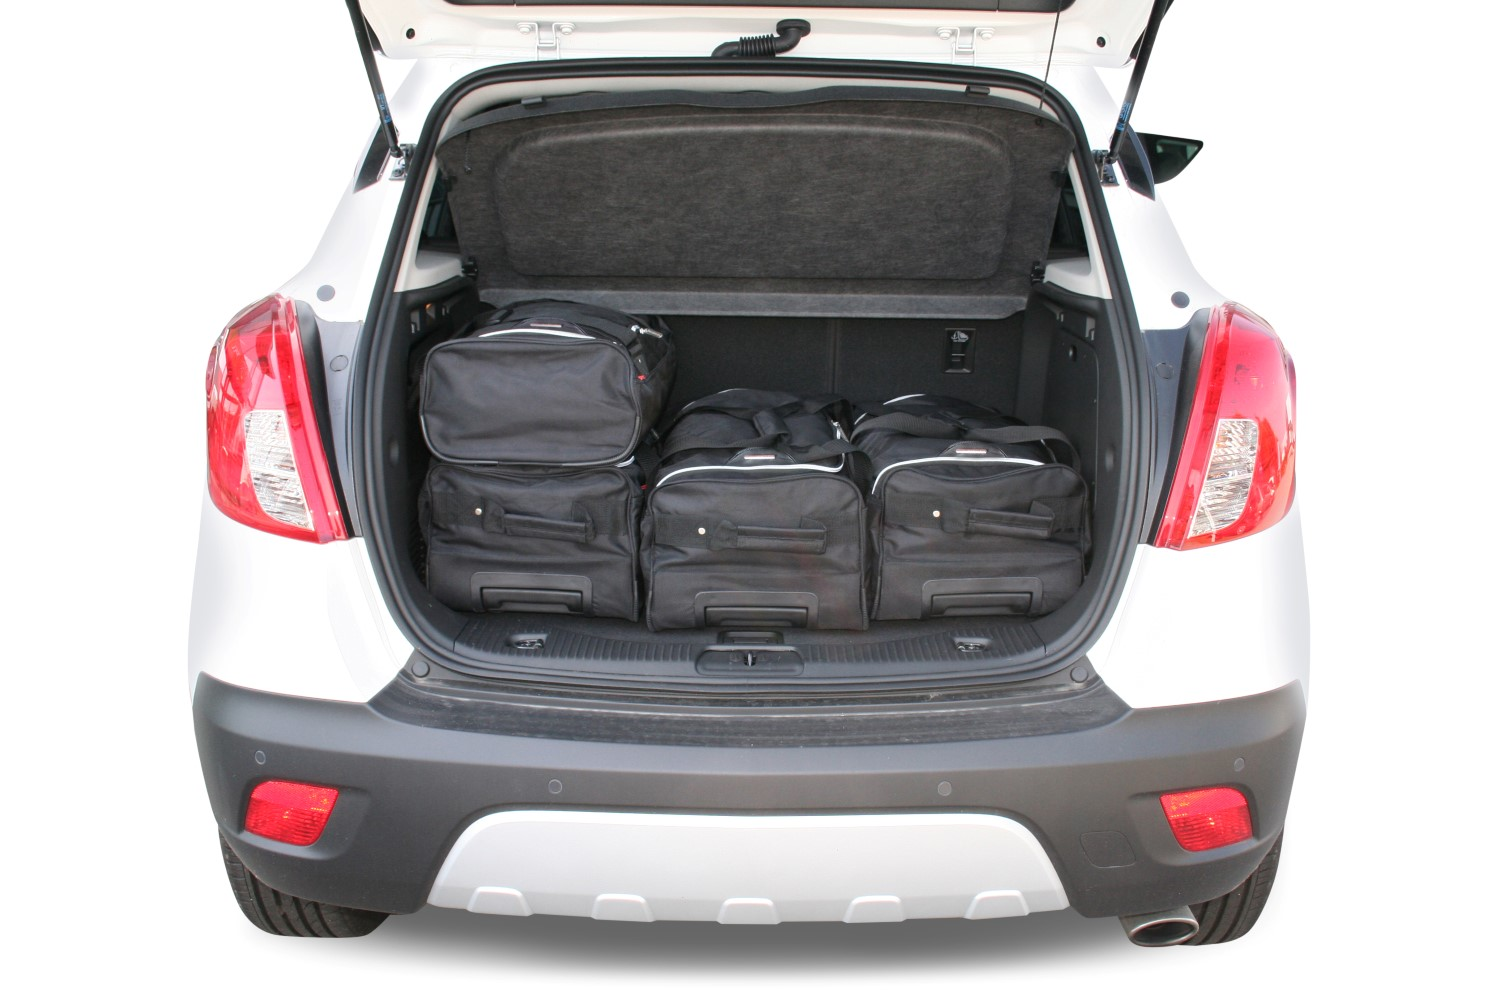 mokka mokka x 2012 pr sent opel mokka mokka x 2012. Black Bedroom Furniture Sets. Home Design Ideas